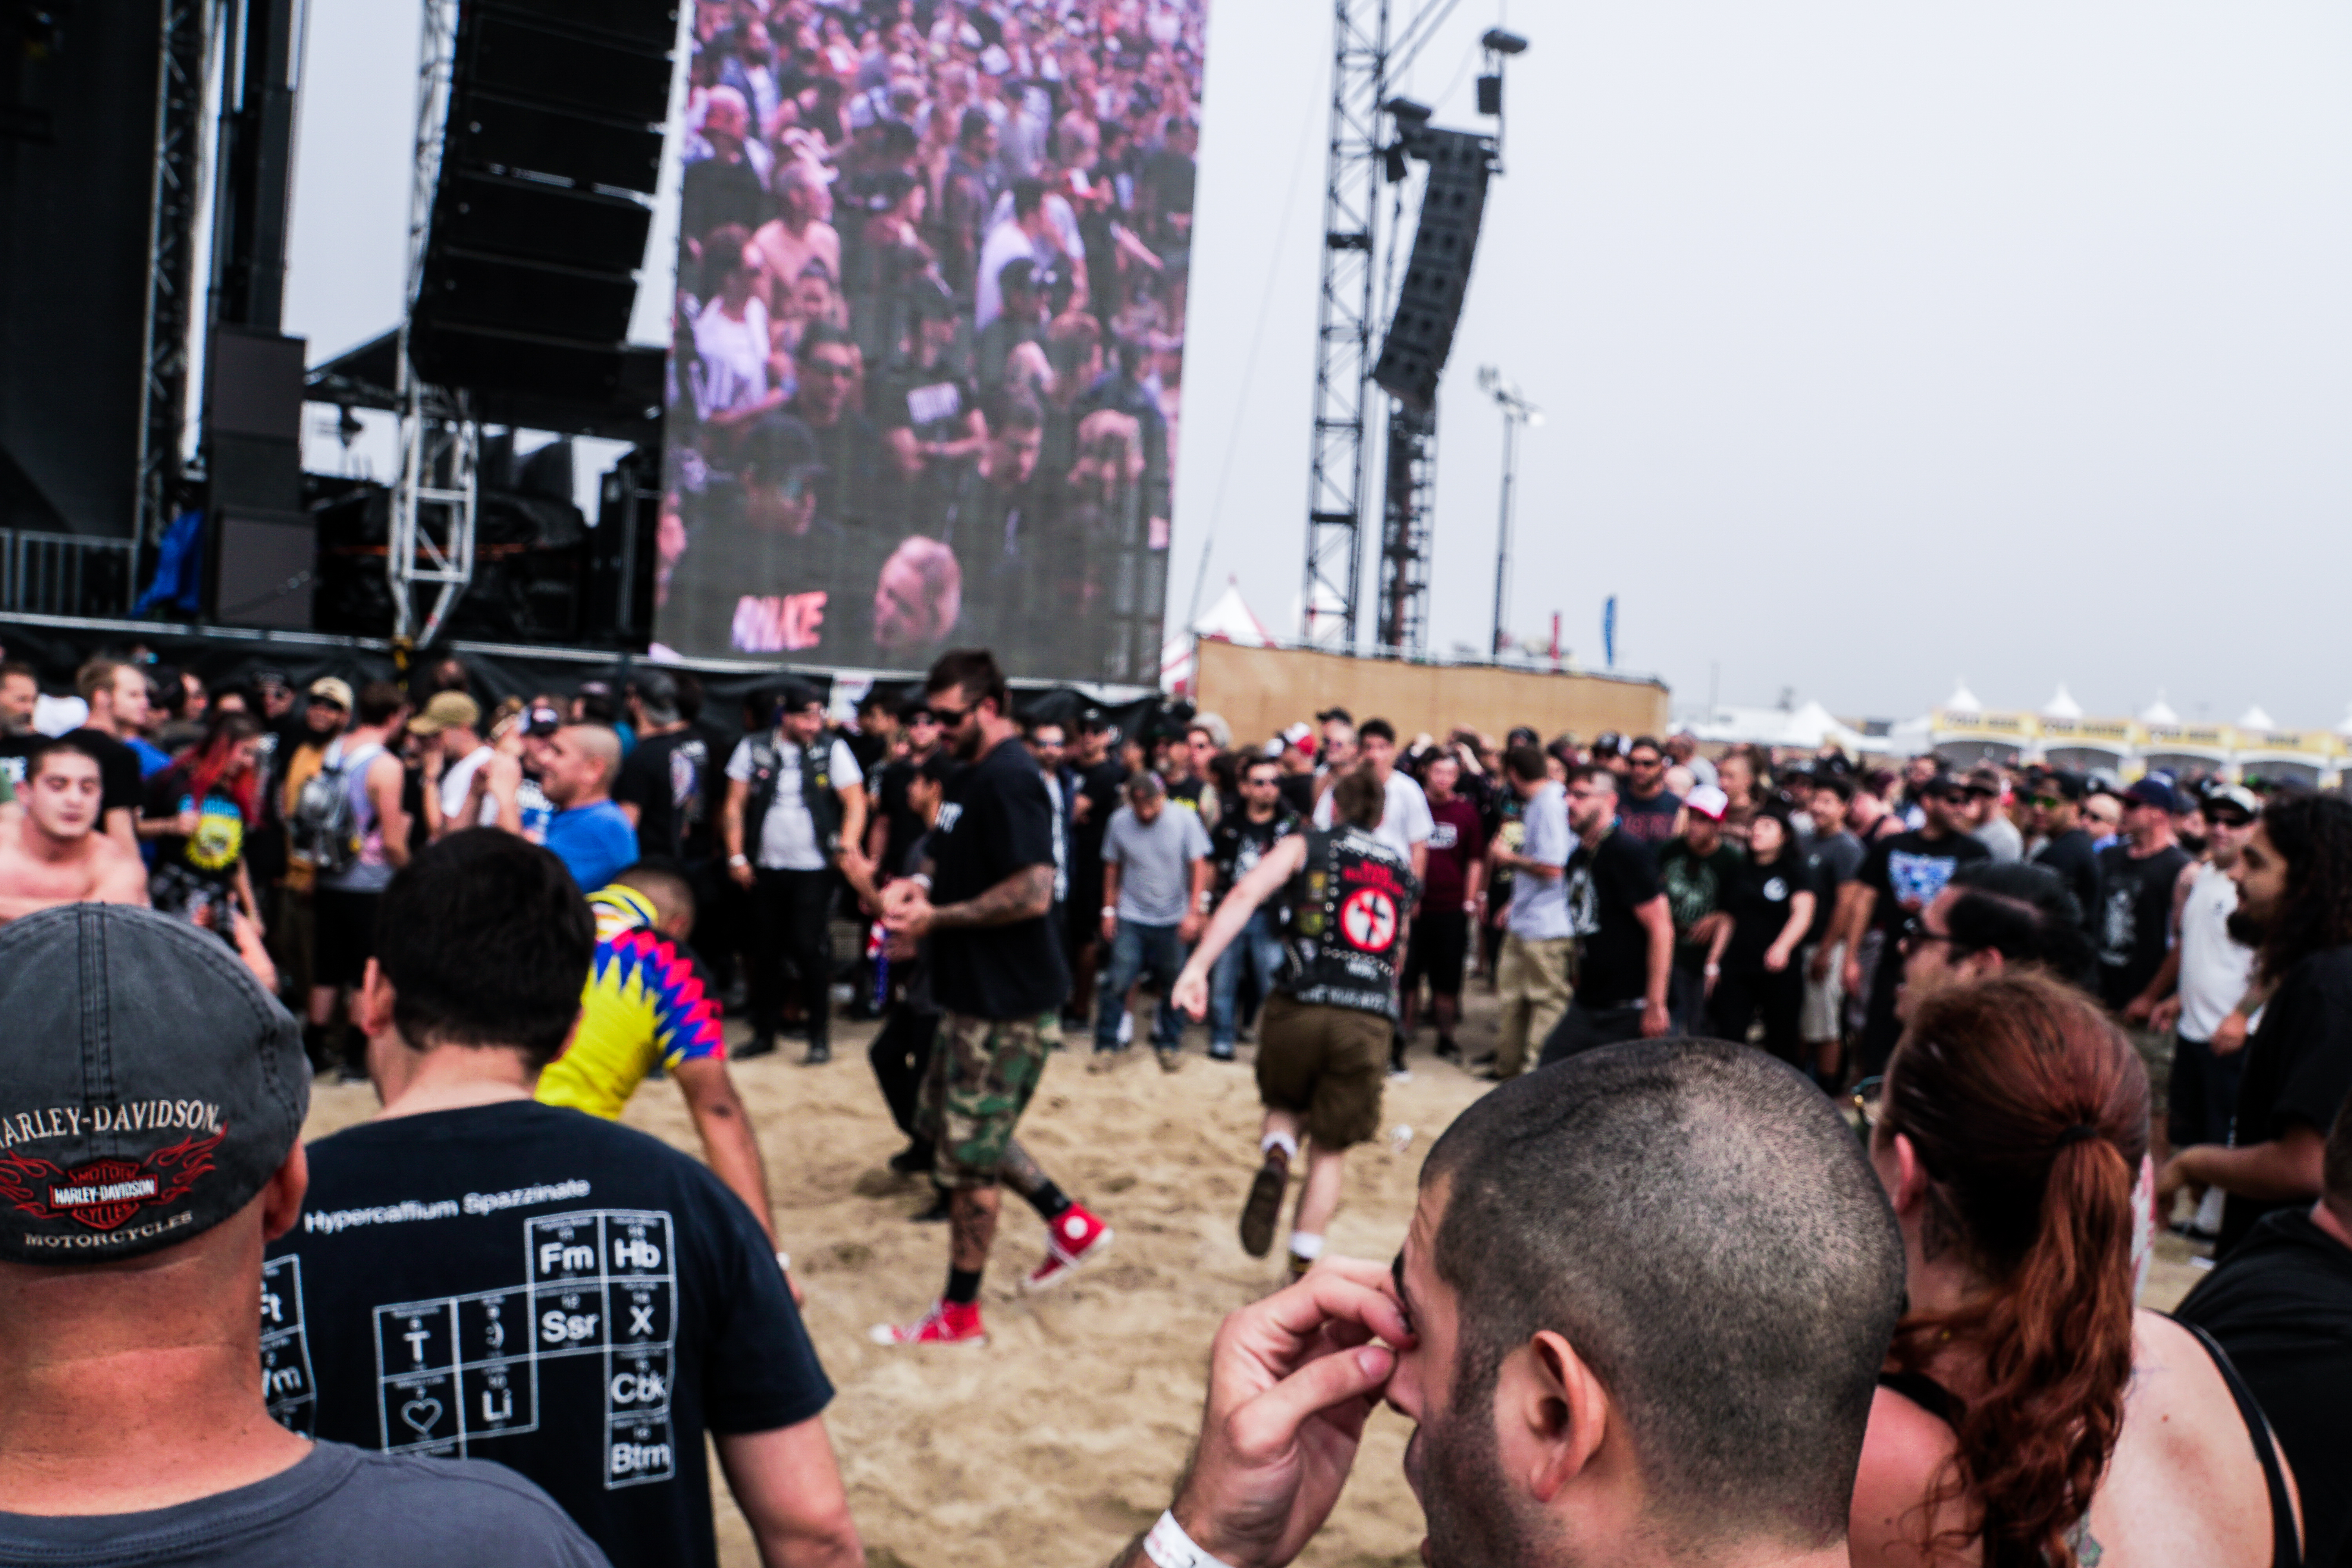 in The MOSH PIT